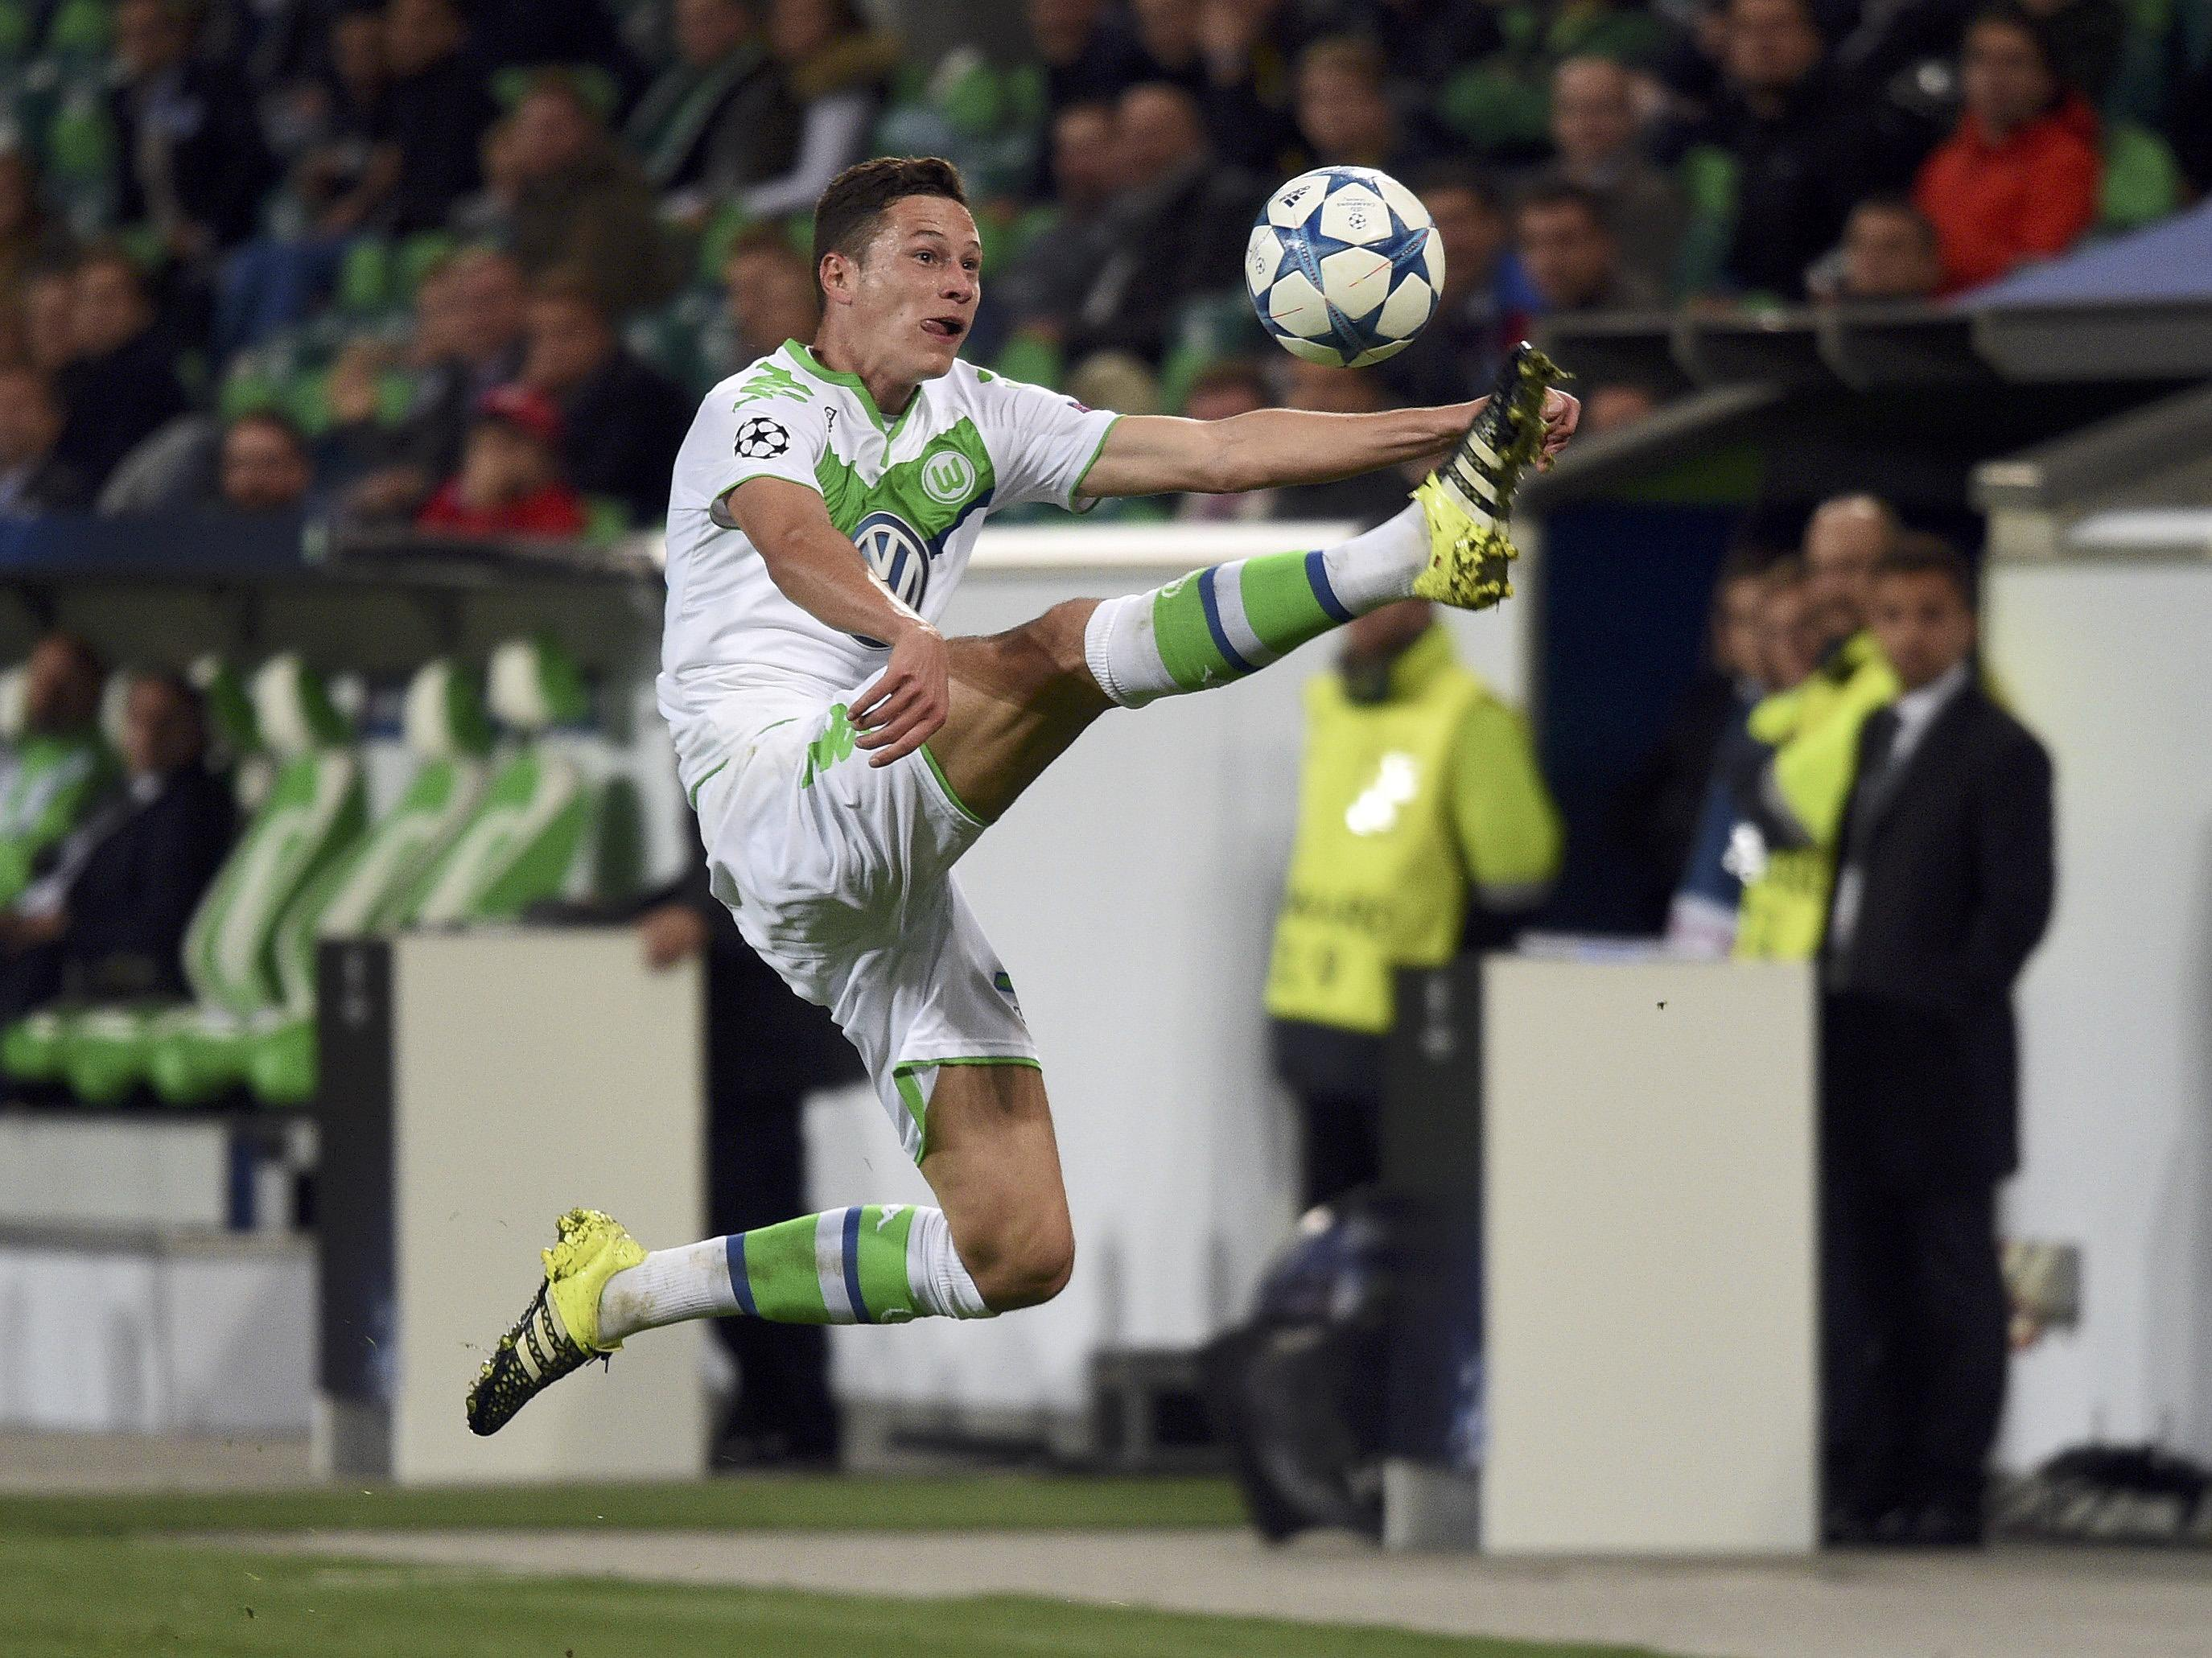 Wolfsburg's Julian Draxler plays the ball against CSKA Moscow during their Champions League group B soccer match in Wolfsburg, Germany September 15, 2015. REUTERS/Fabian Bimmer